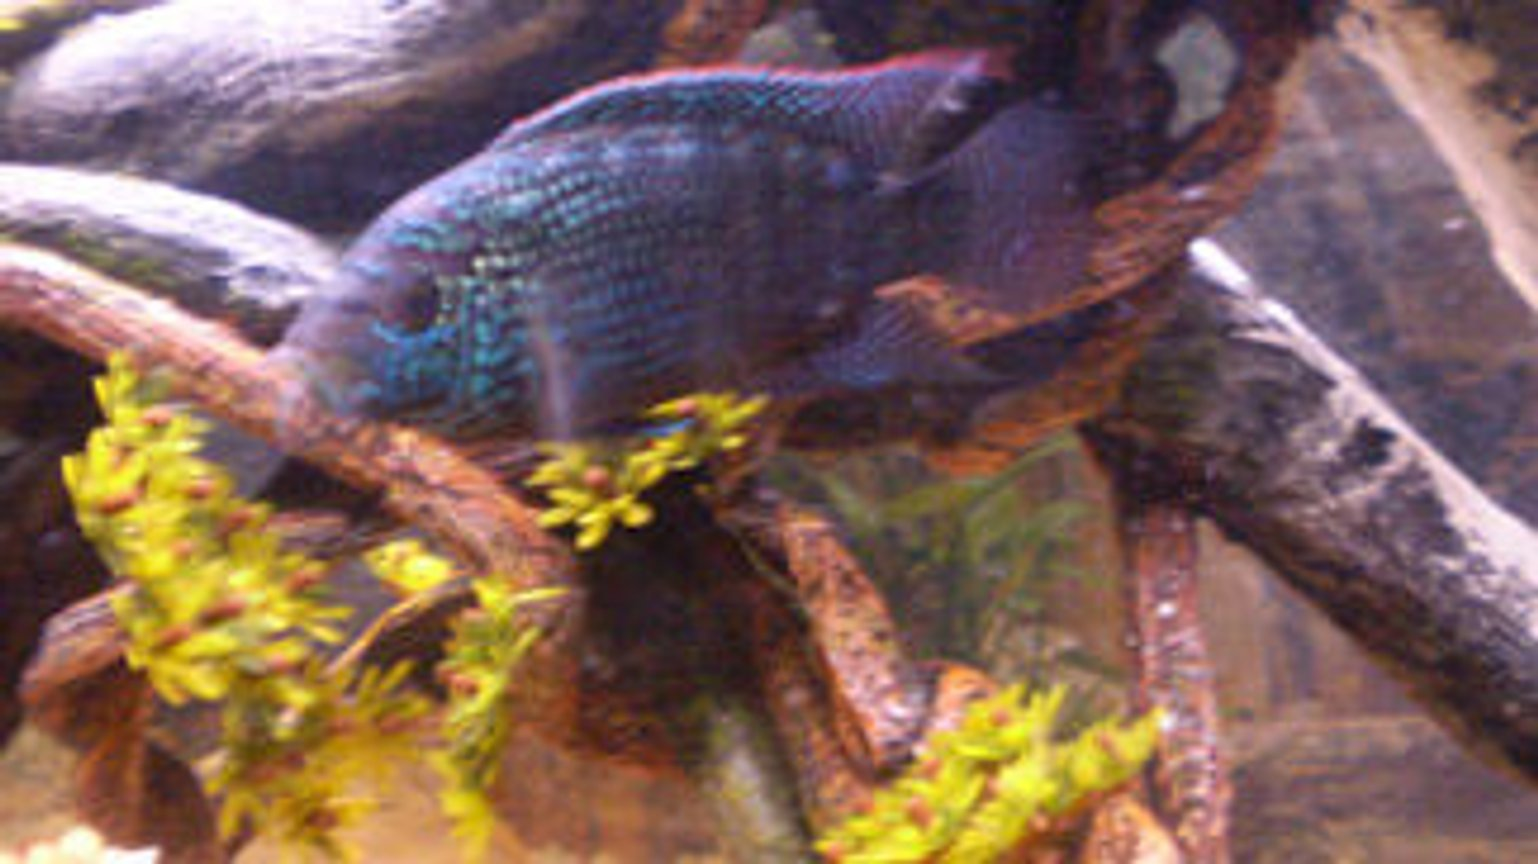 freshwater fish - nandopsis octofasciatum - jack dempsey stocking in 75 gallons tank - My female Jack Dempsey. Sorry for the bad pic she wouldnt hold still but you can see her colors really well